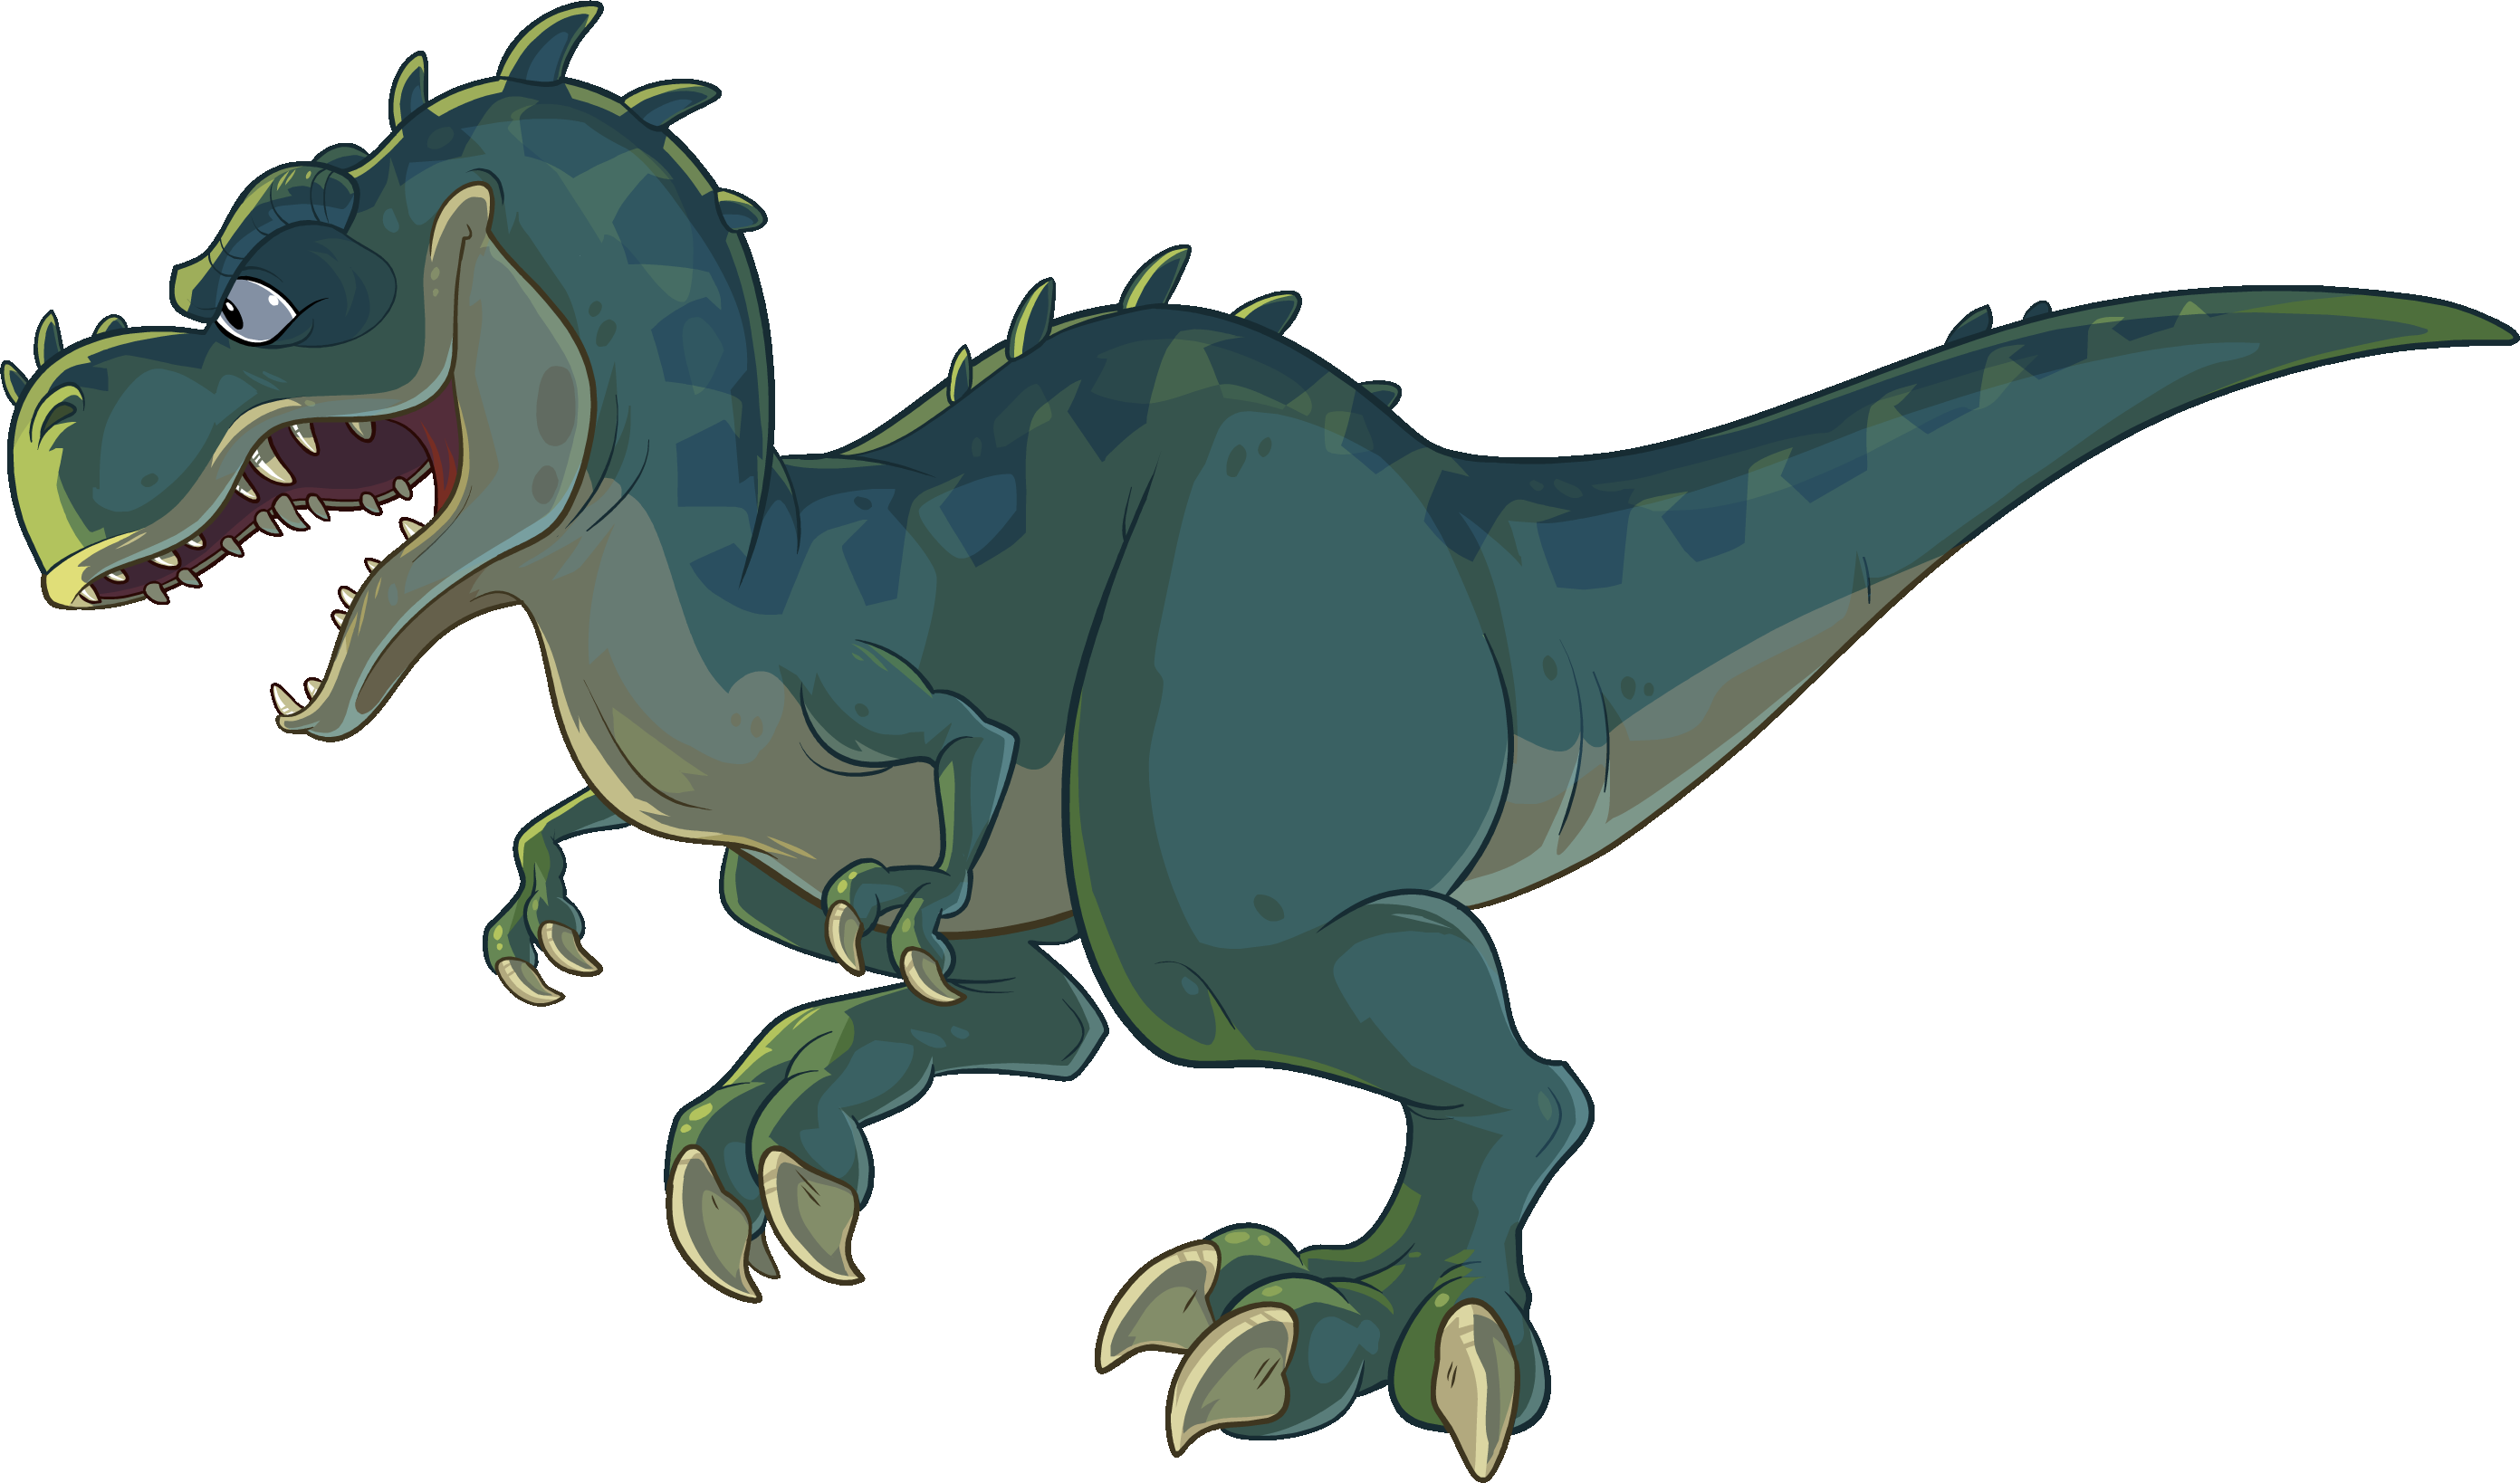 Trex png character. Image green t rex